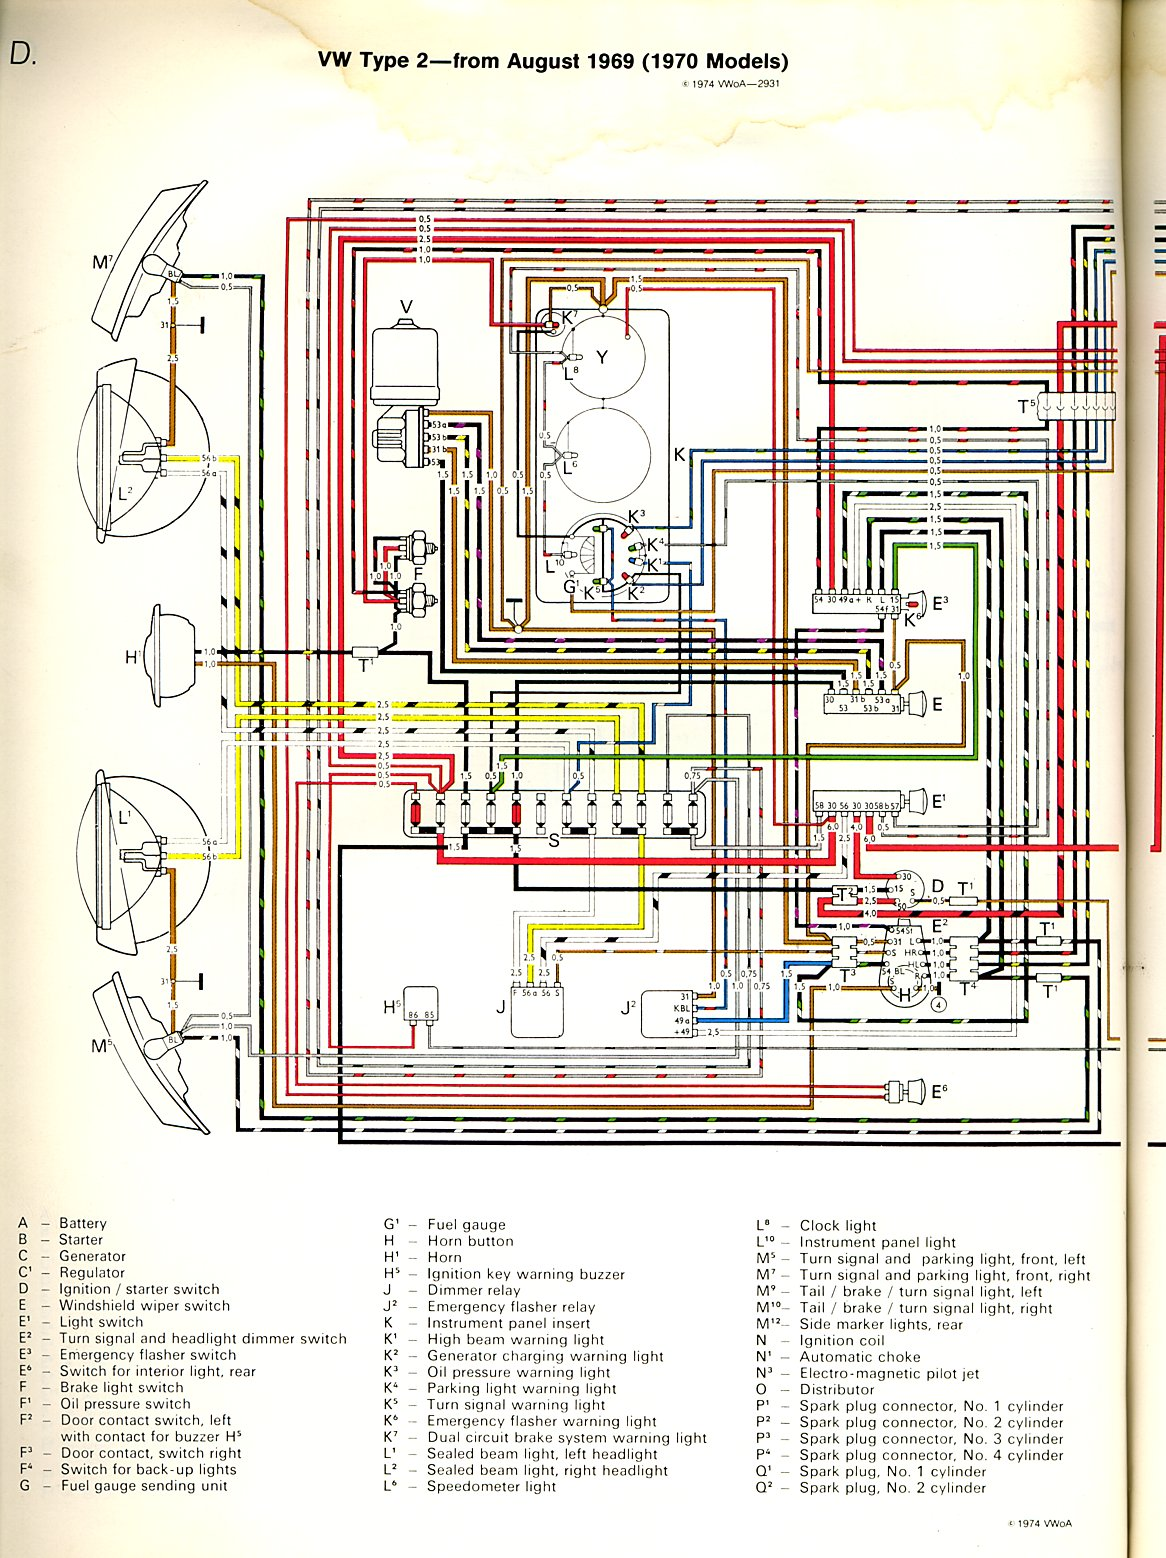 baybus_70a bus wiring diagram vw wiring harness diagram \u2022 wiring diagrams j 1971 vw bus wiring diagram at bakdesigns.co